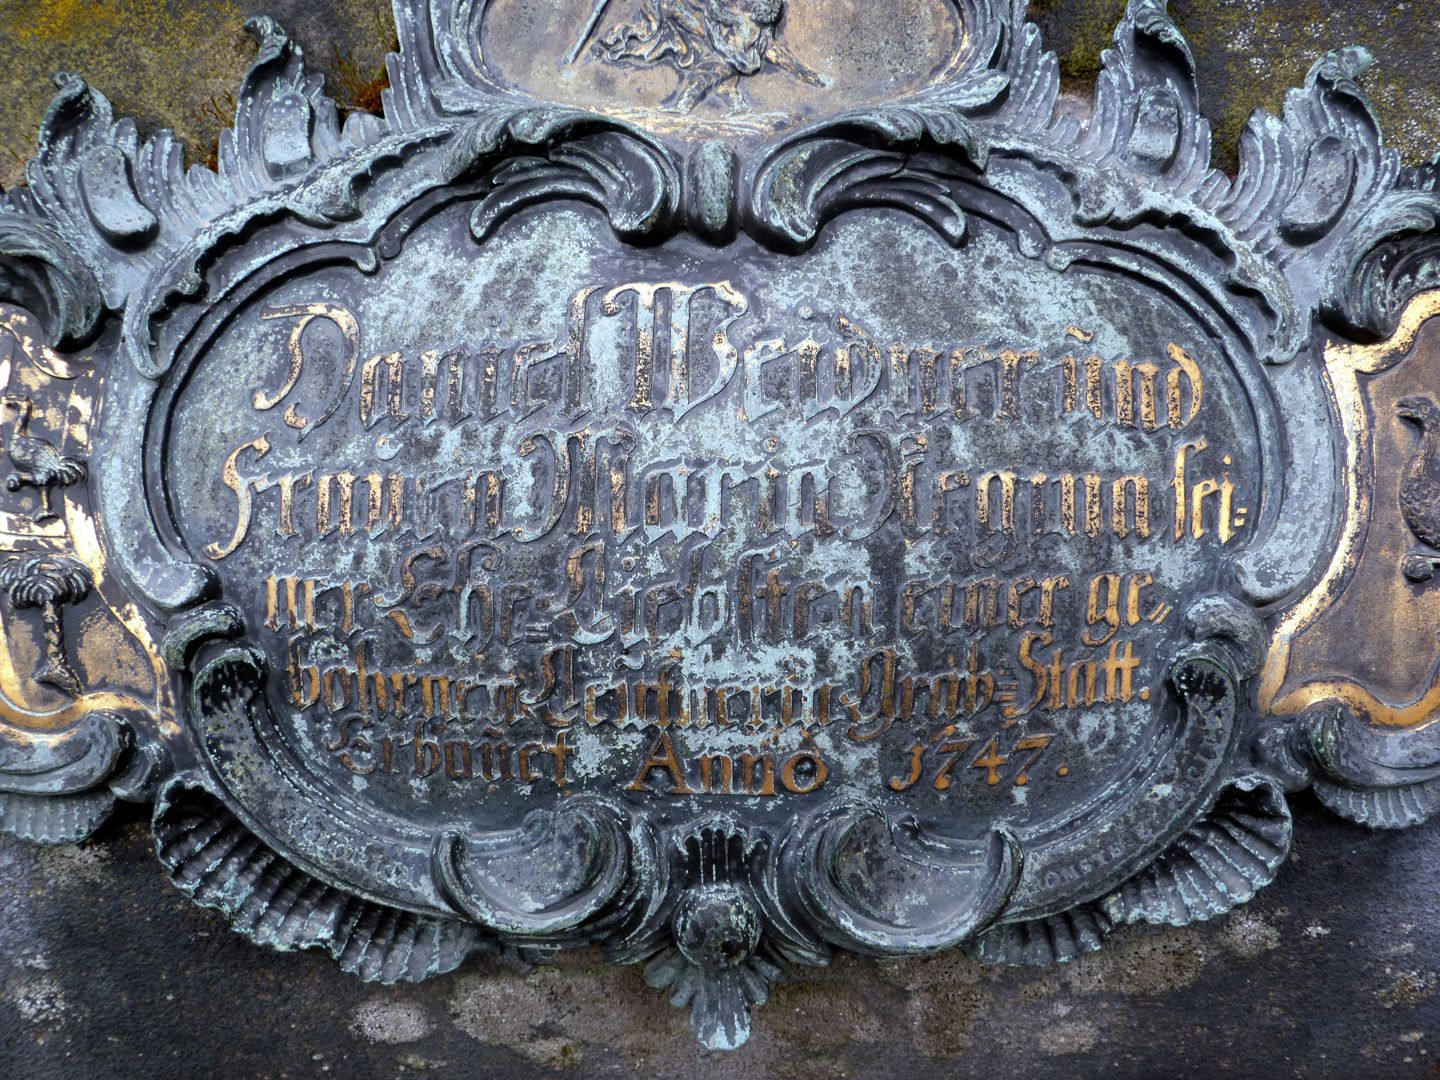 Tomb of Daniel Weidner and his spouse Maria Regina Leutner West side, ostrich